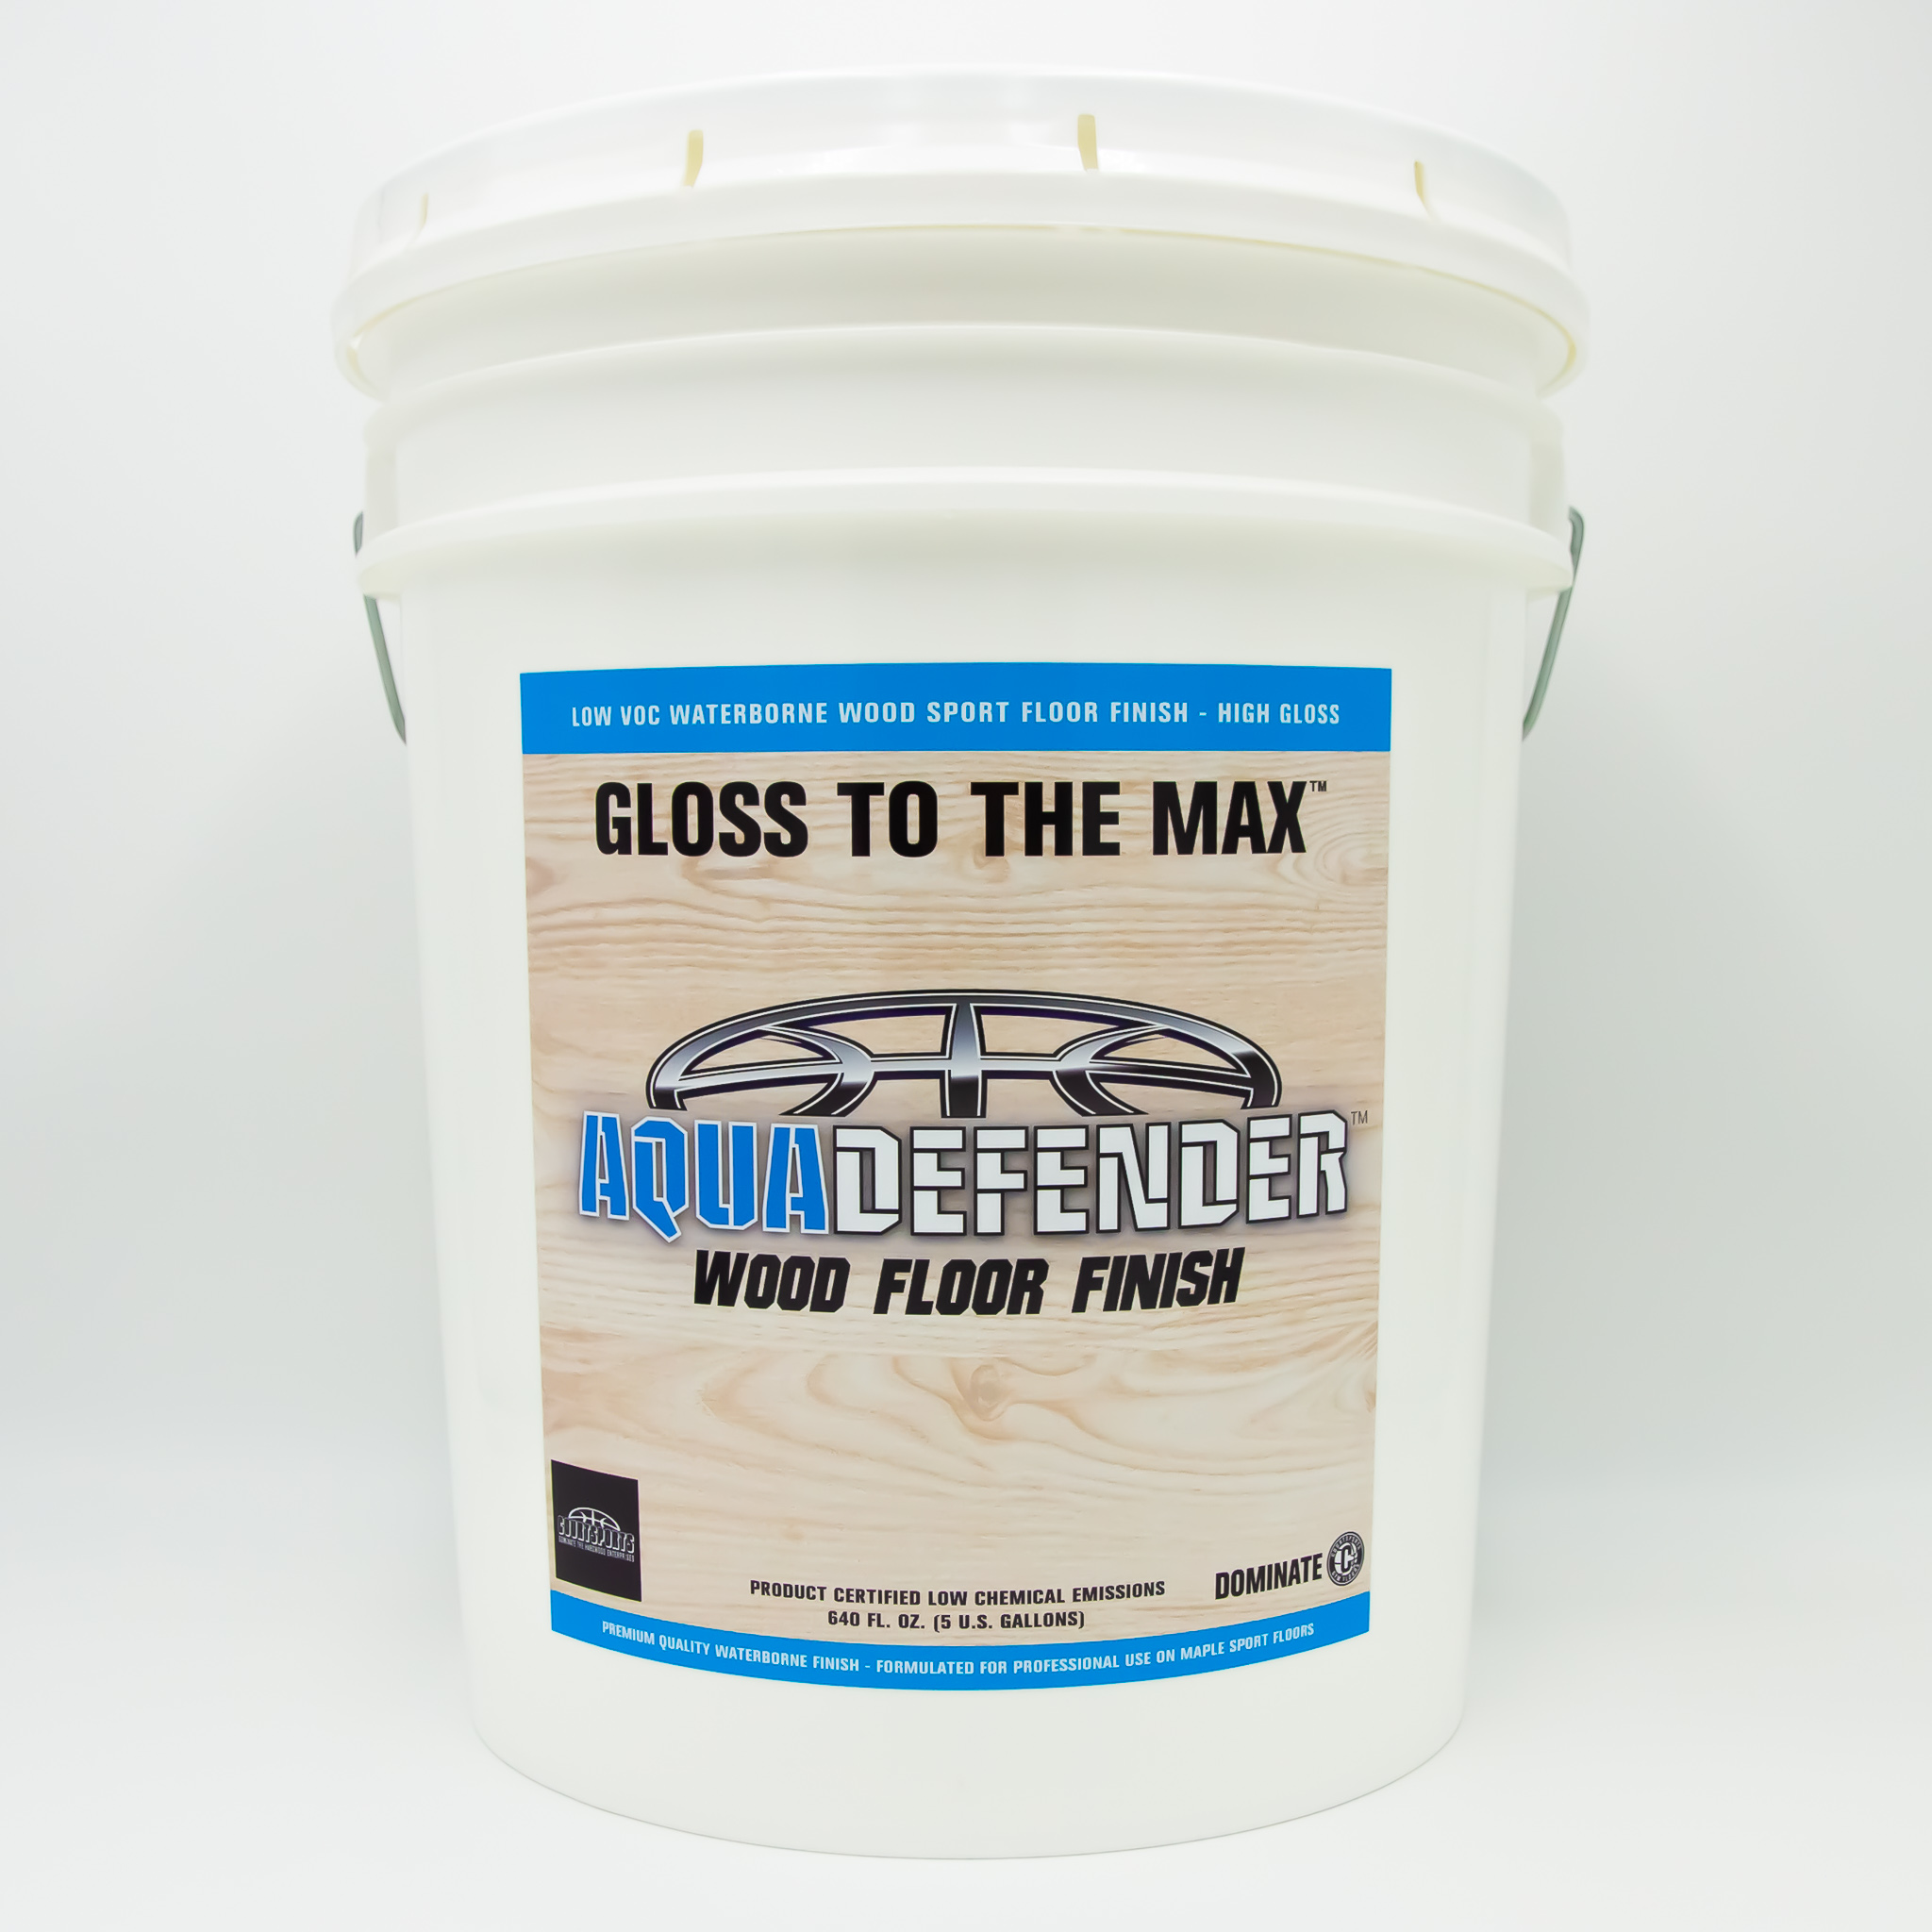 Aquadefender Wood Floor Finish For Sport Floors Waterborne Low Voc Formula And Fast Drying